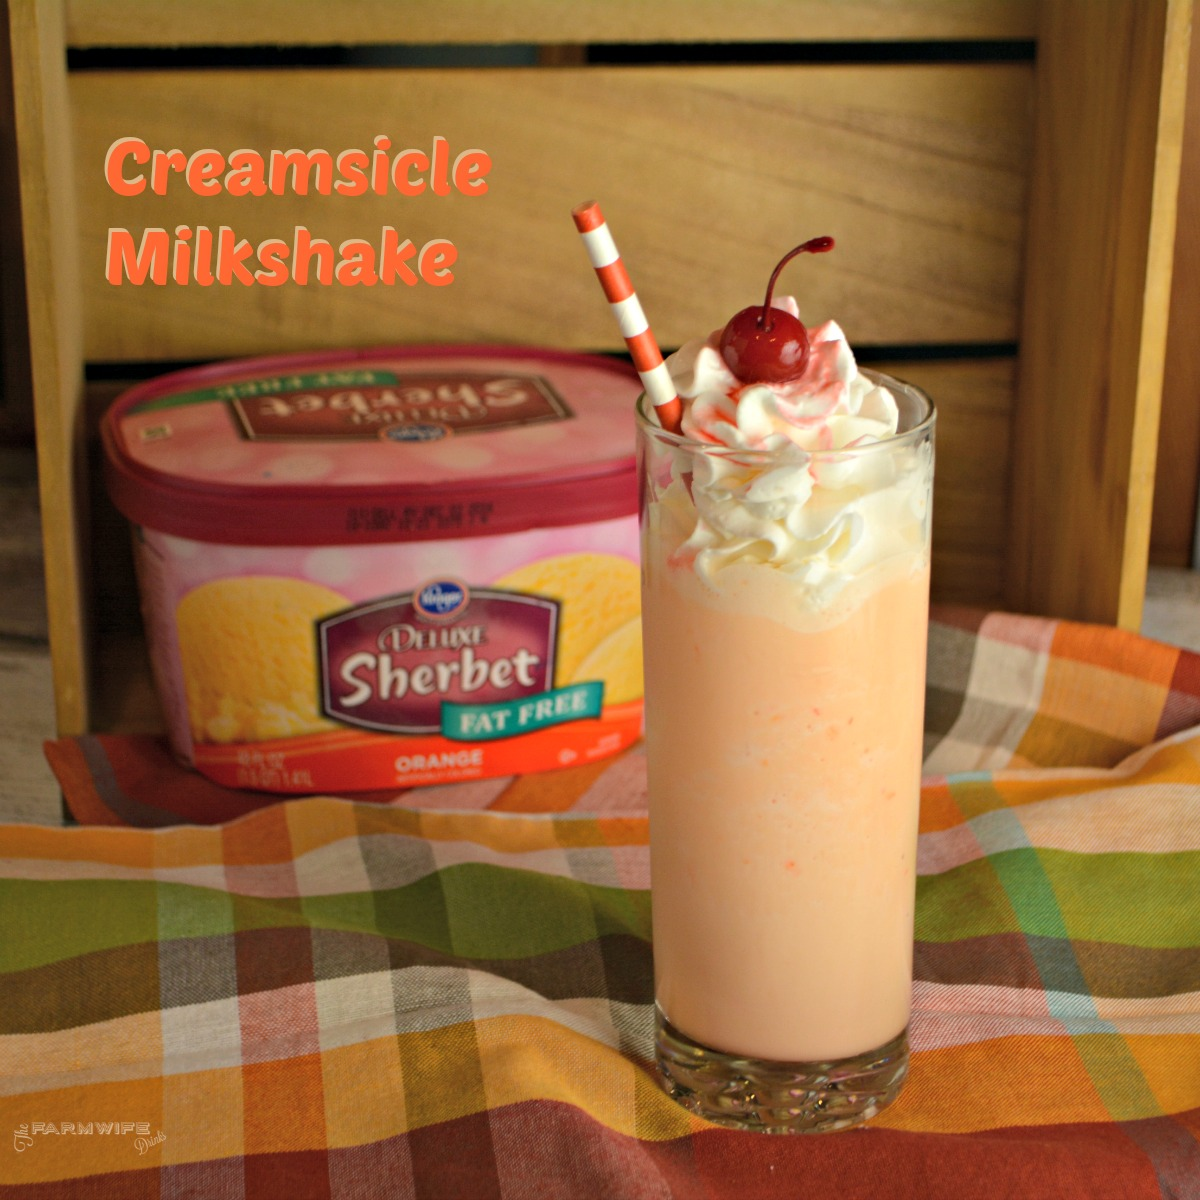 Orange Creamsicle milkshakes are refreshing and reminiscent of the orange push-ups we ate all summer long growing up.